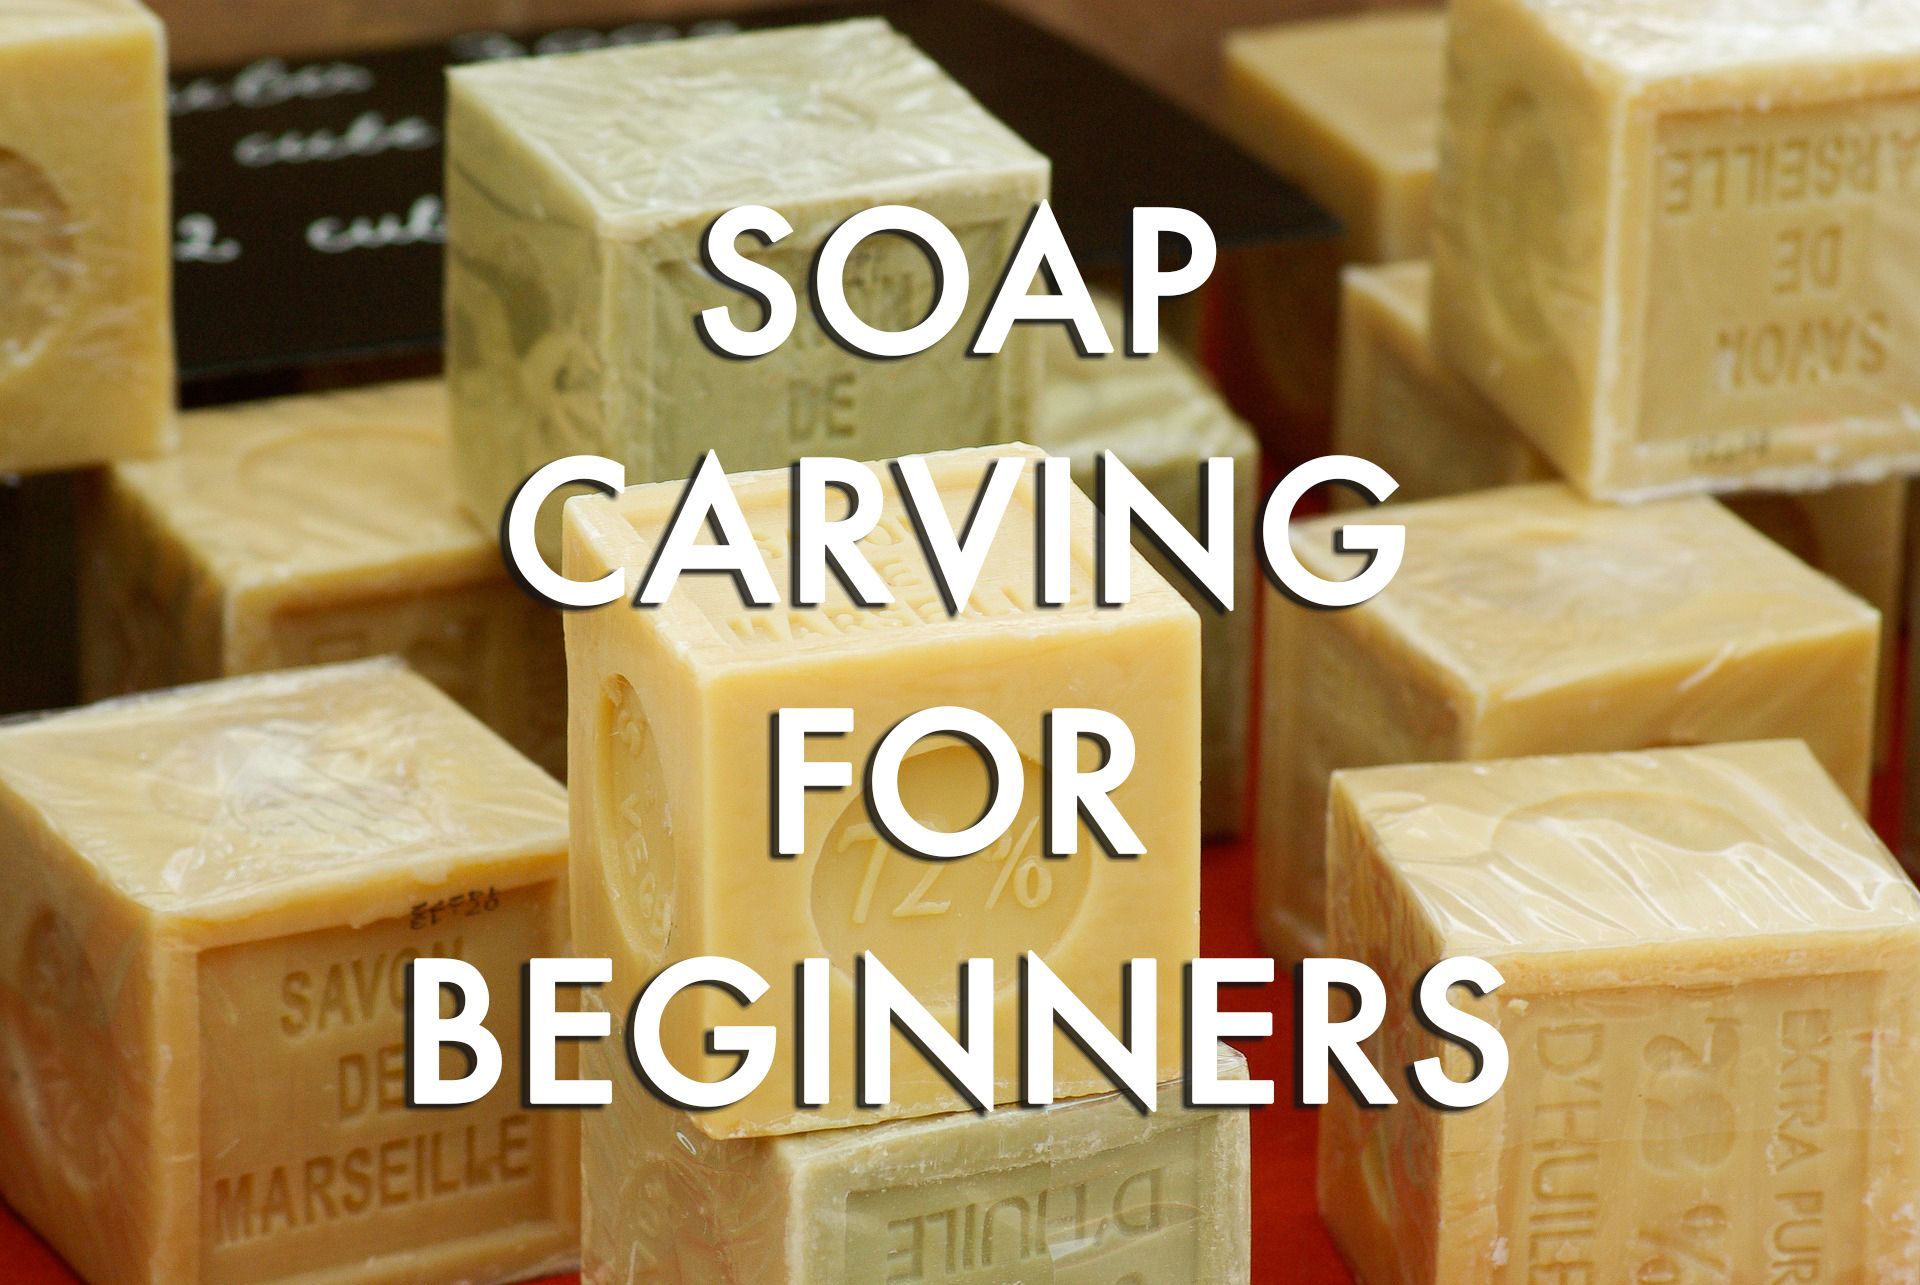 Pin by jill hutchins on soap carving pinterest soap carving